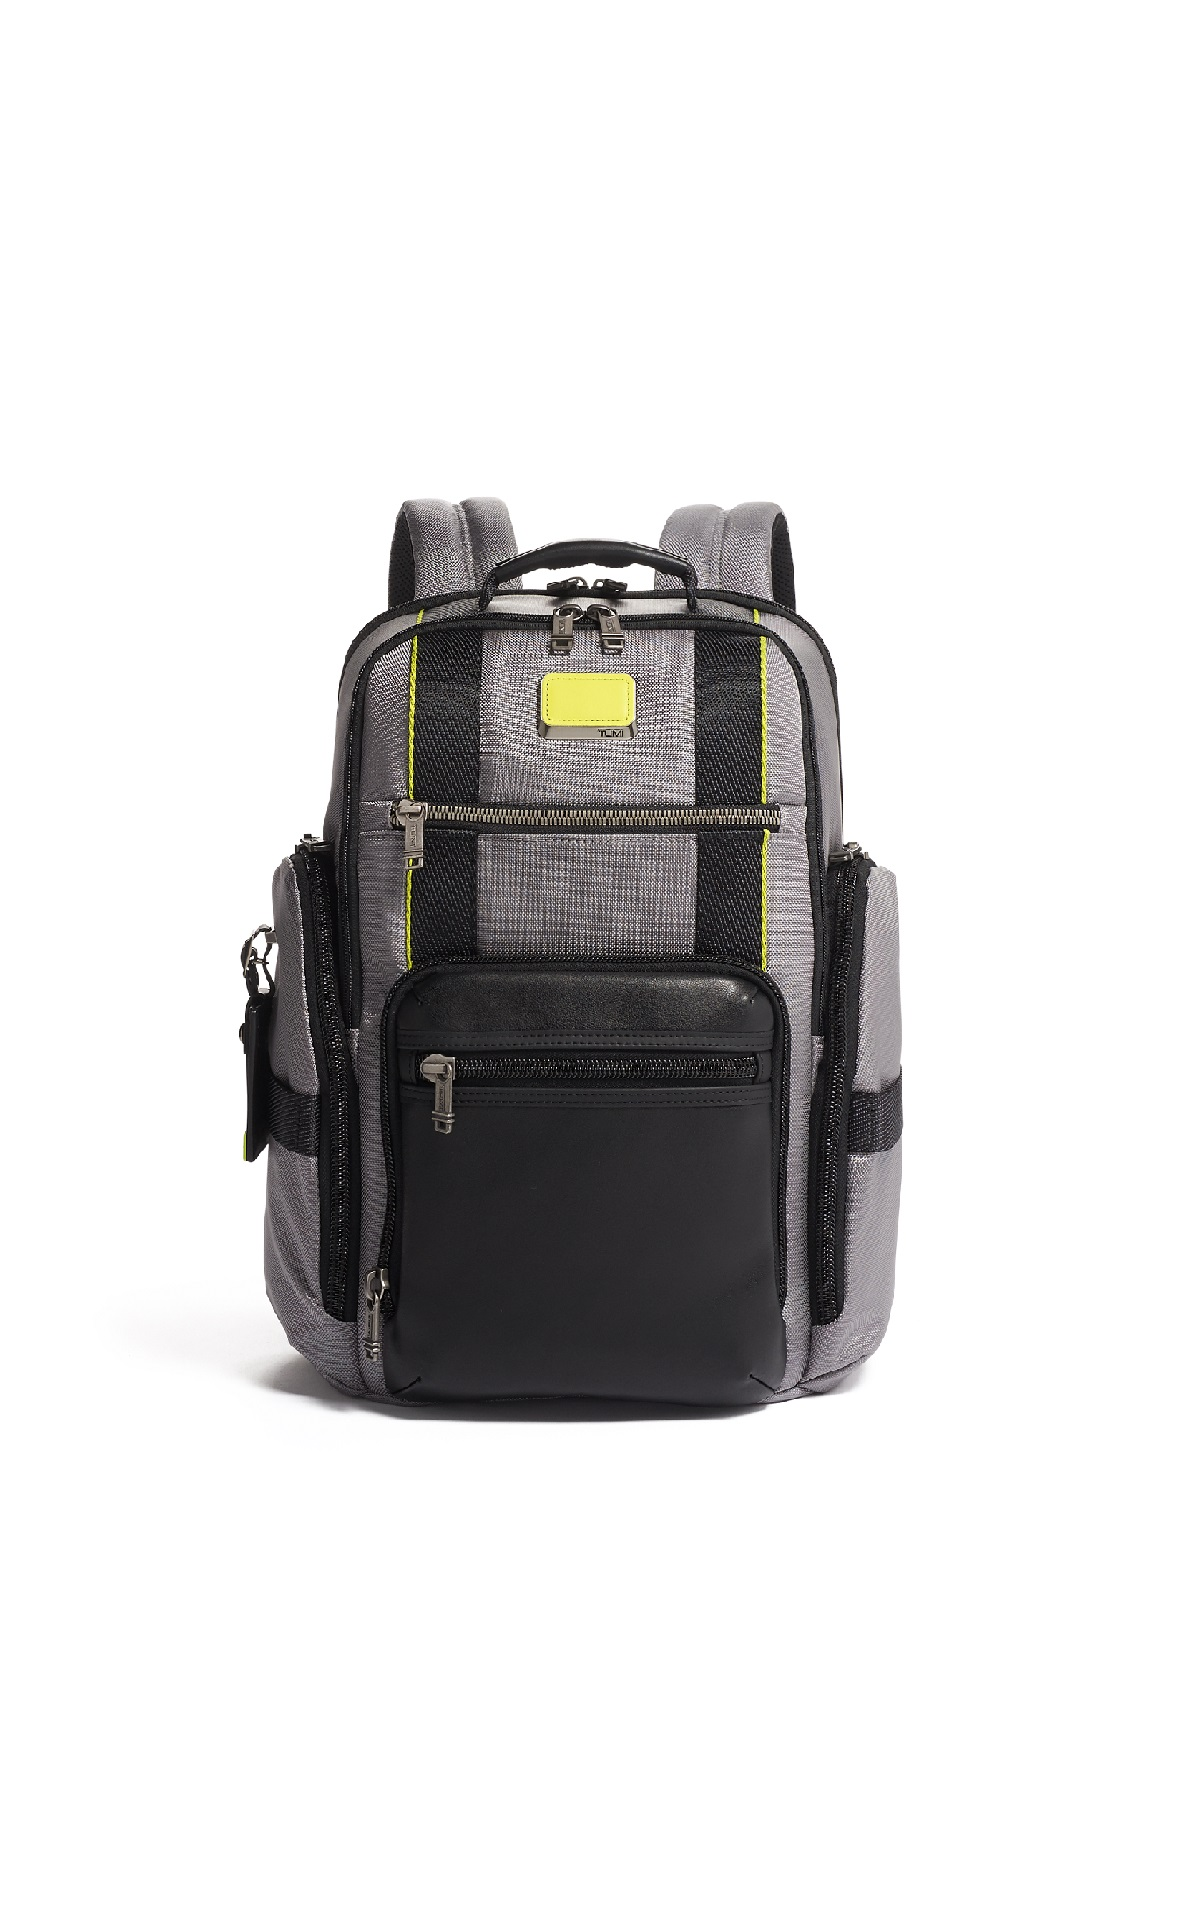 Sheppard backpack Tumi